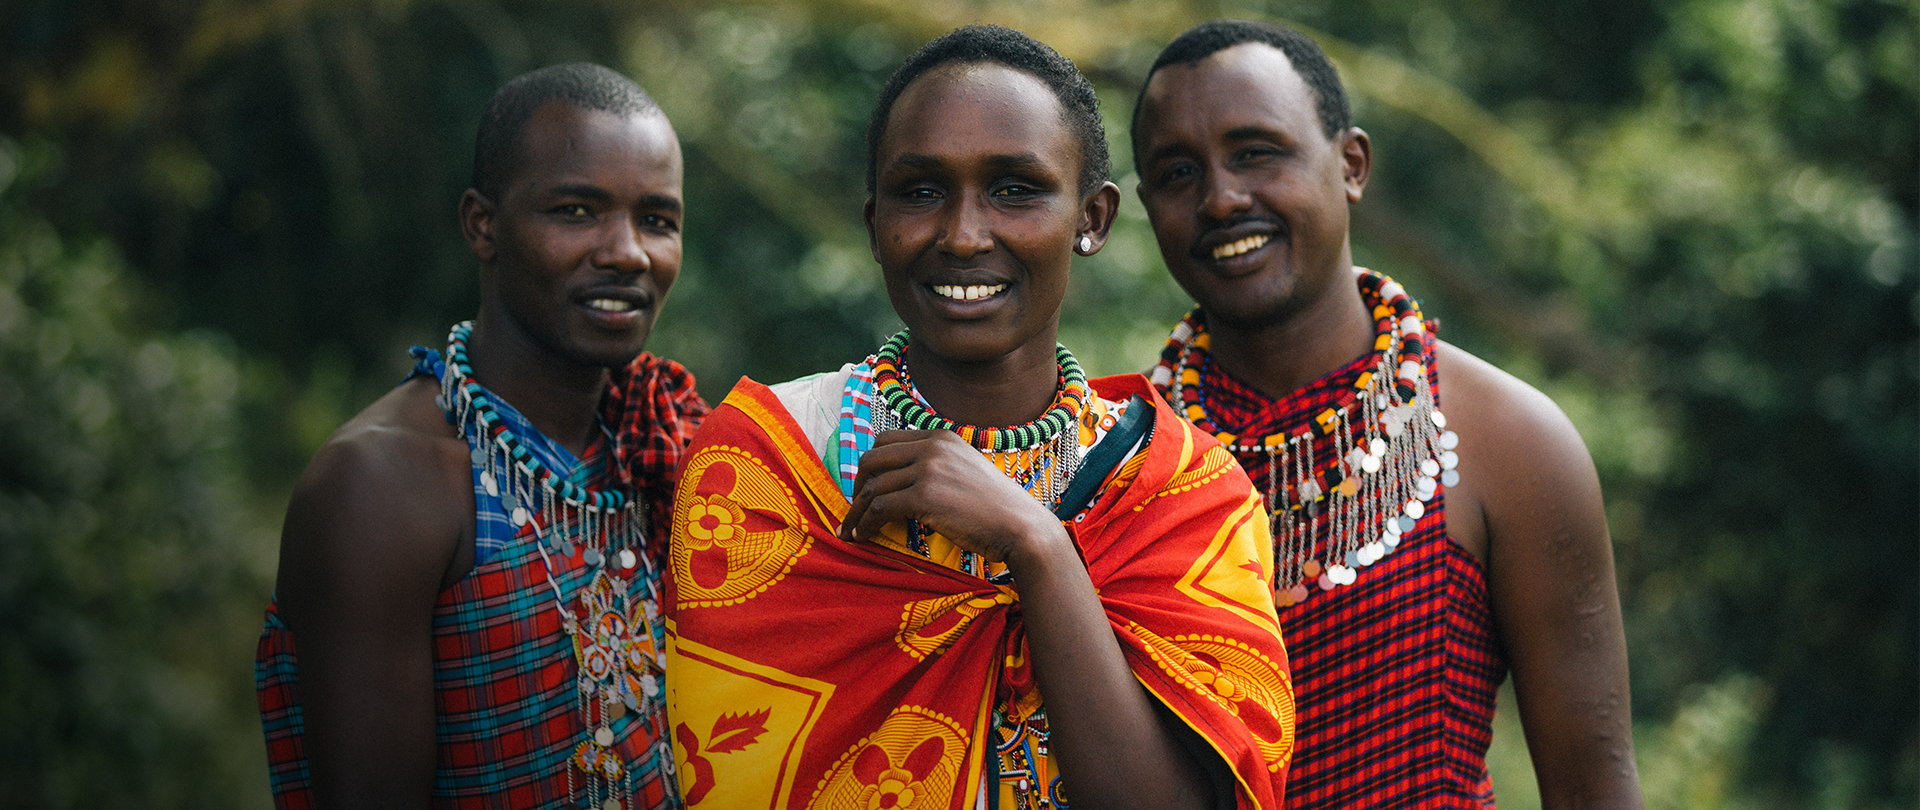 Local Kenyan community members in traditional clothing